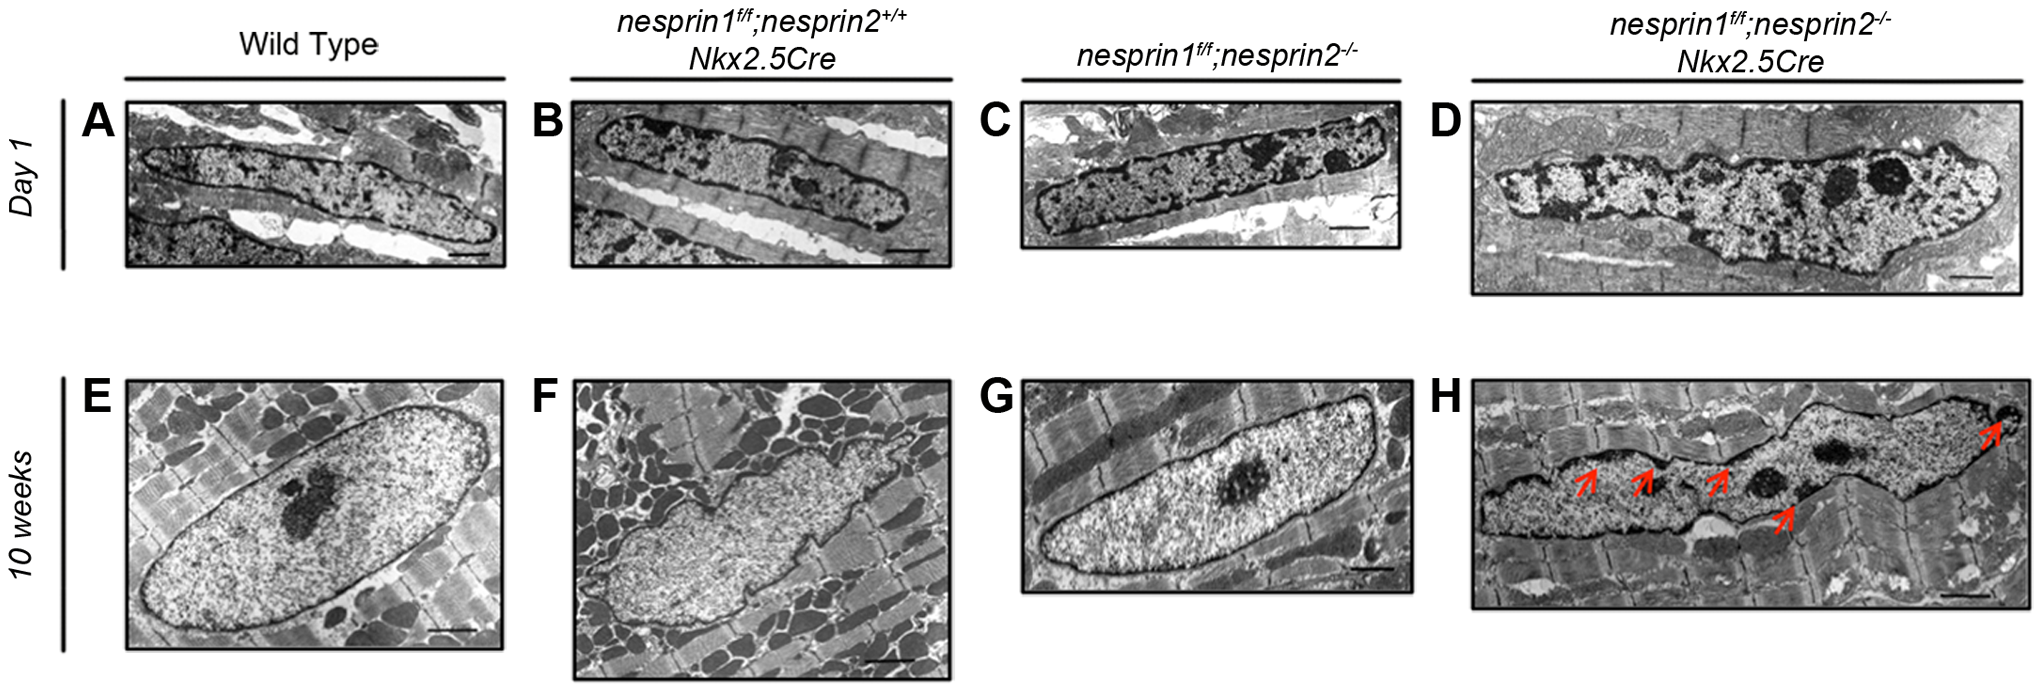 Examination of cardiomyocyte nuclear ultrastructure in response to loss of Nesprin 1 and/or 2.